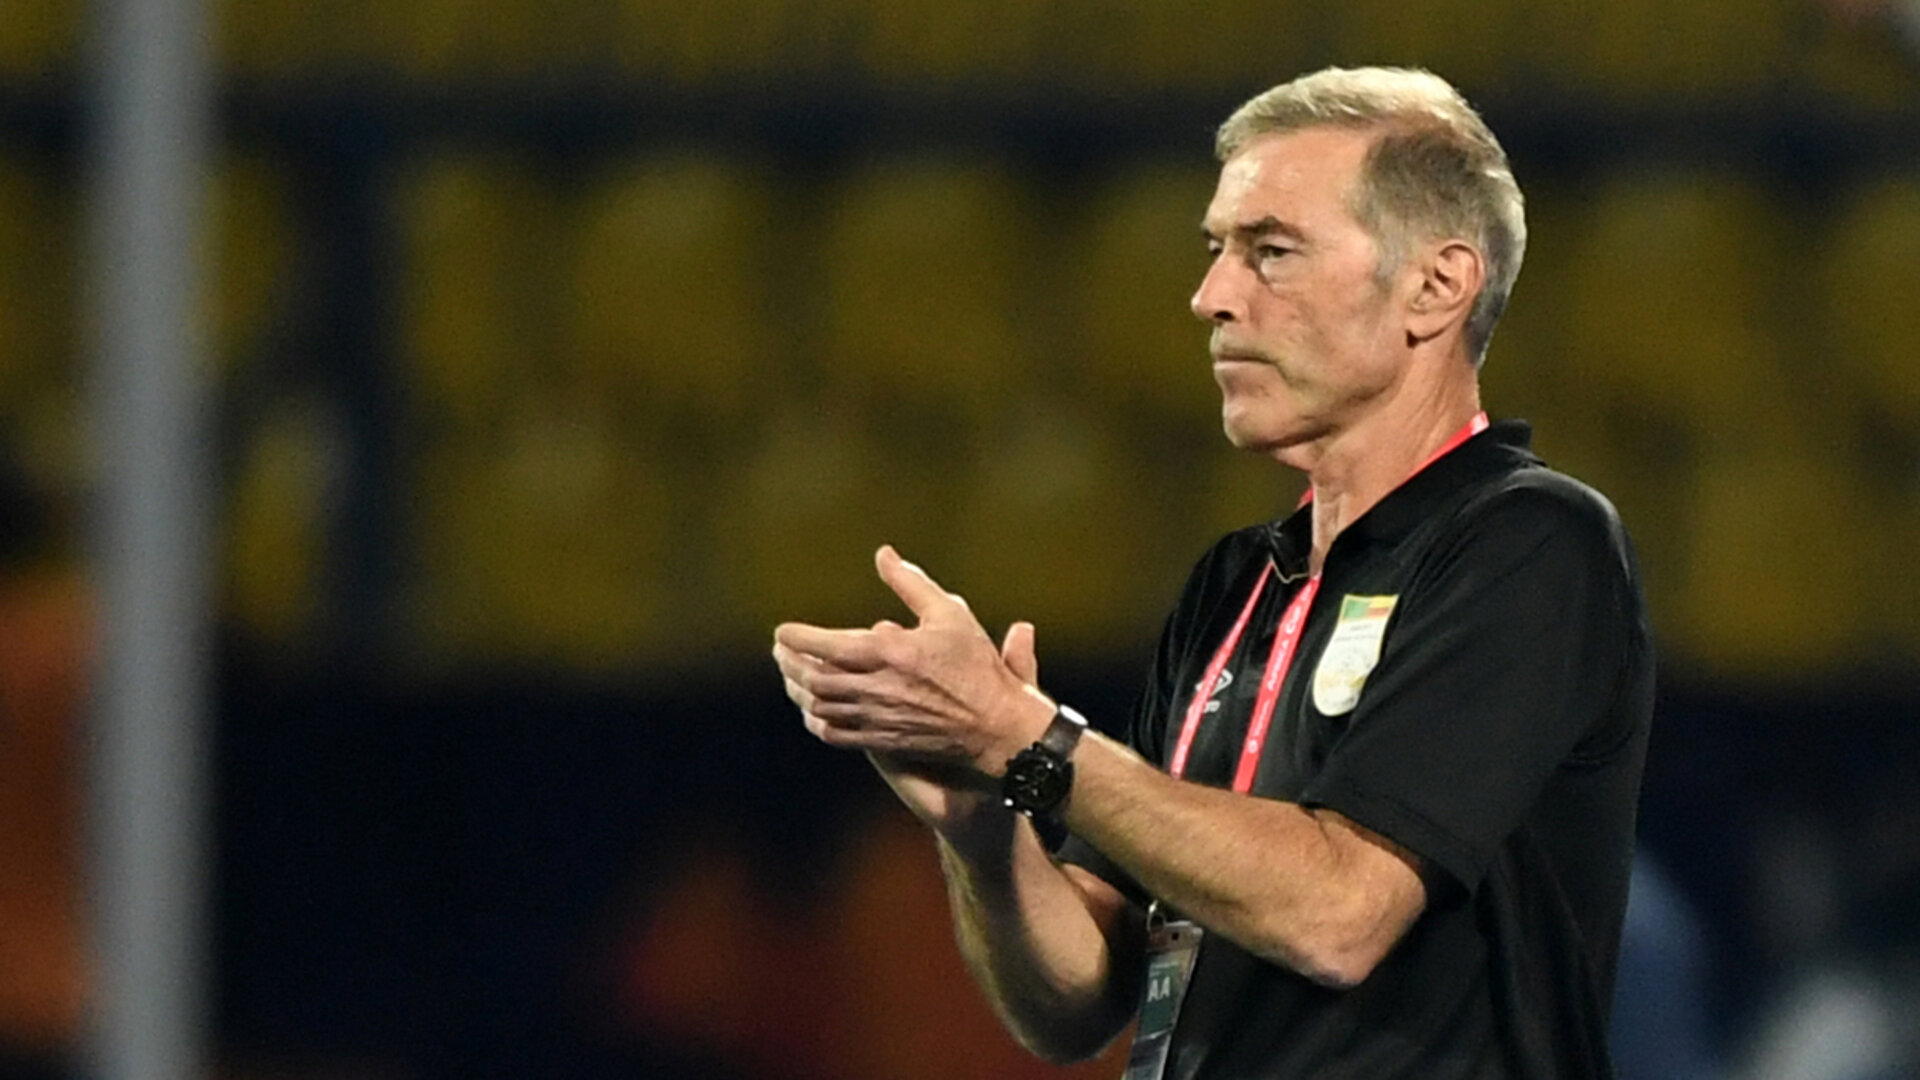 Benin coach Dussuyer concedes Nigeria superiority after Afcon qualifiers defeat